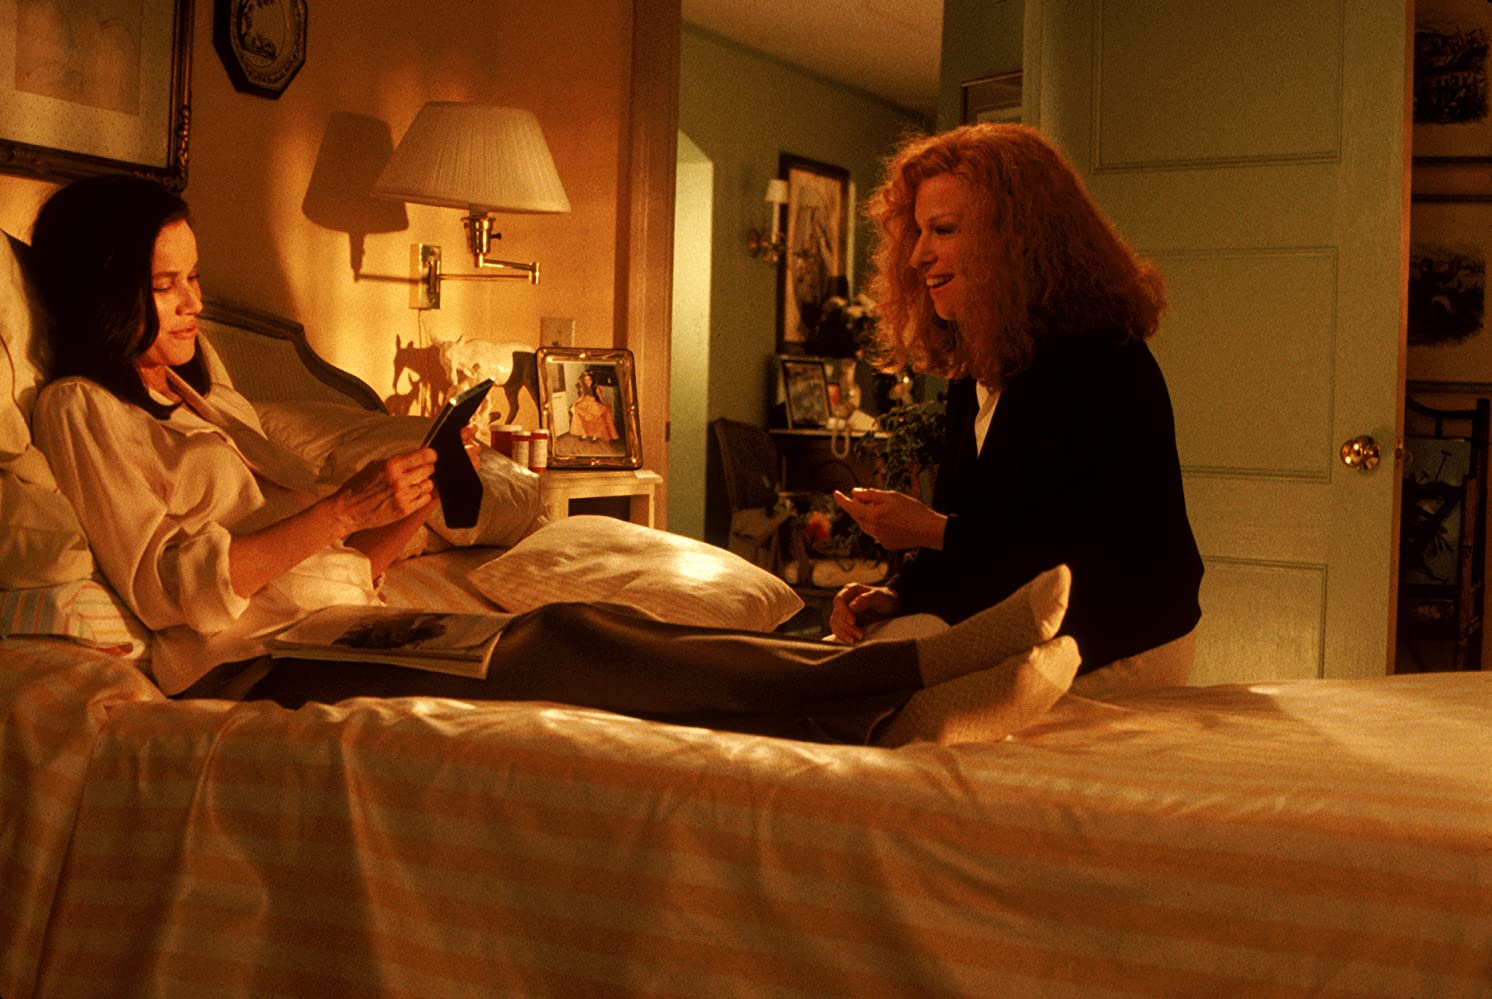 Bette Midler and Barbara Hershey in Beaches (1988)